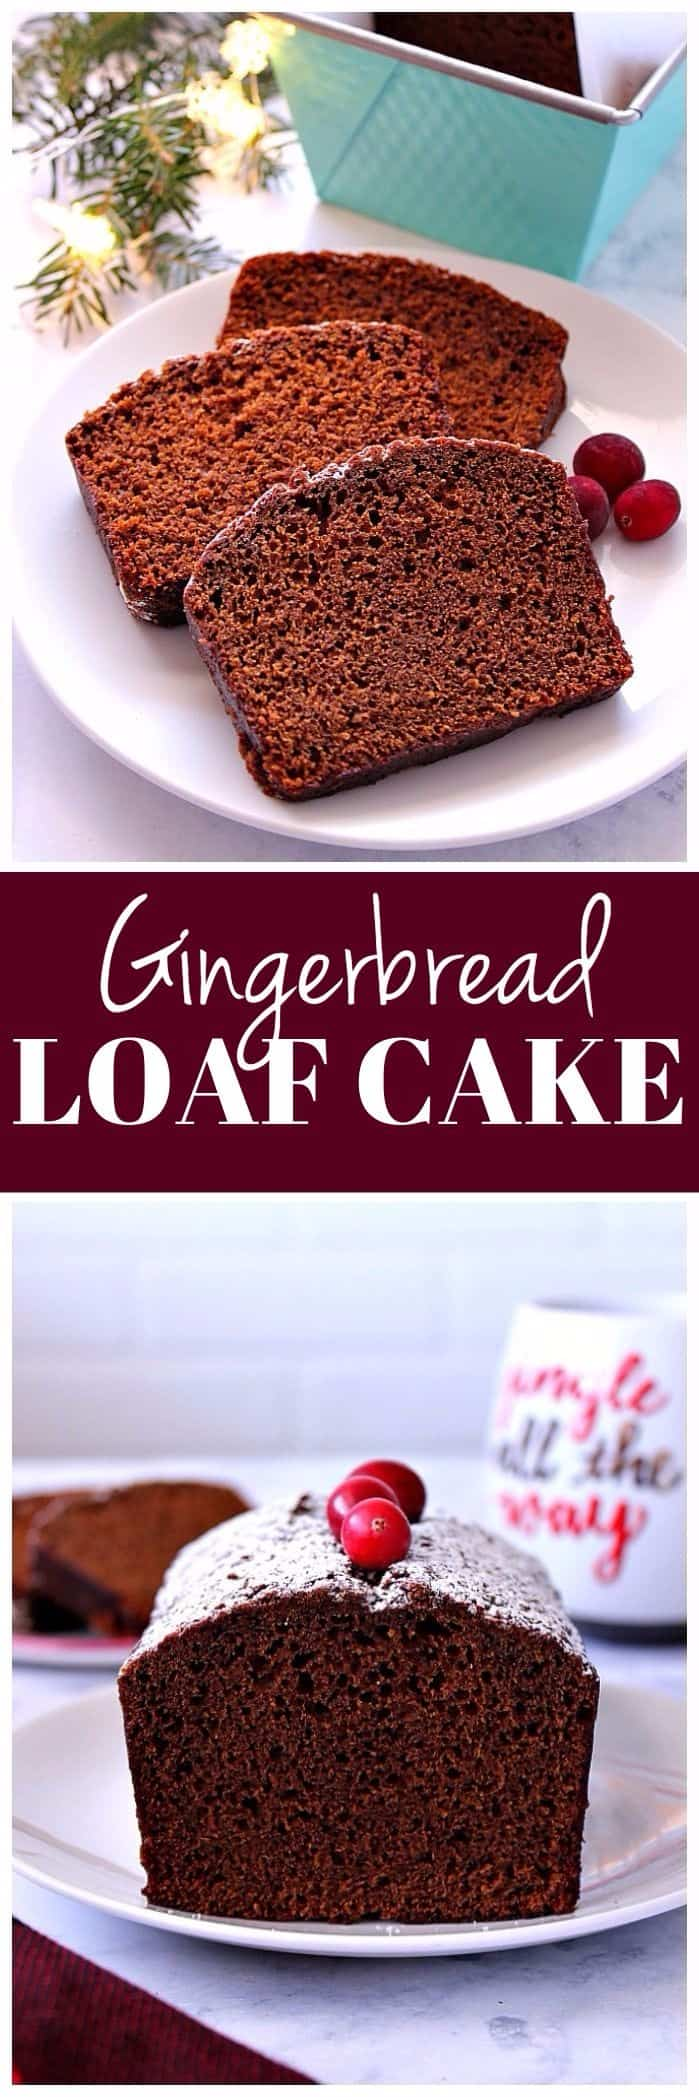 gingerbread loaf cake recipe long1 Gingerbread Loaf Cake Recipe